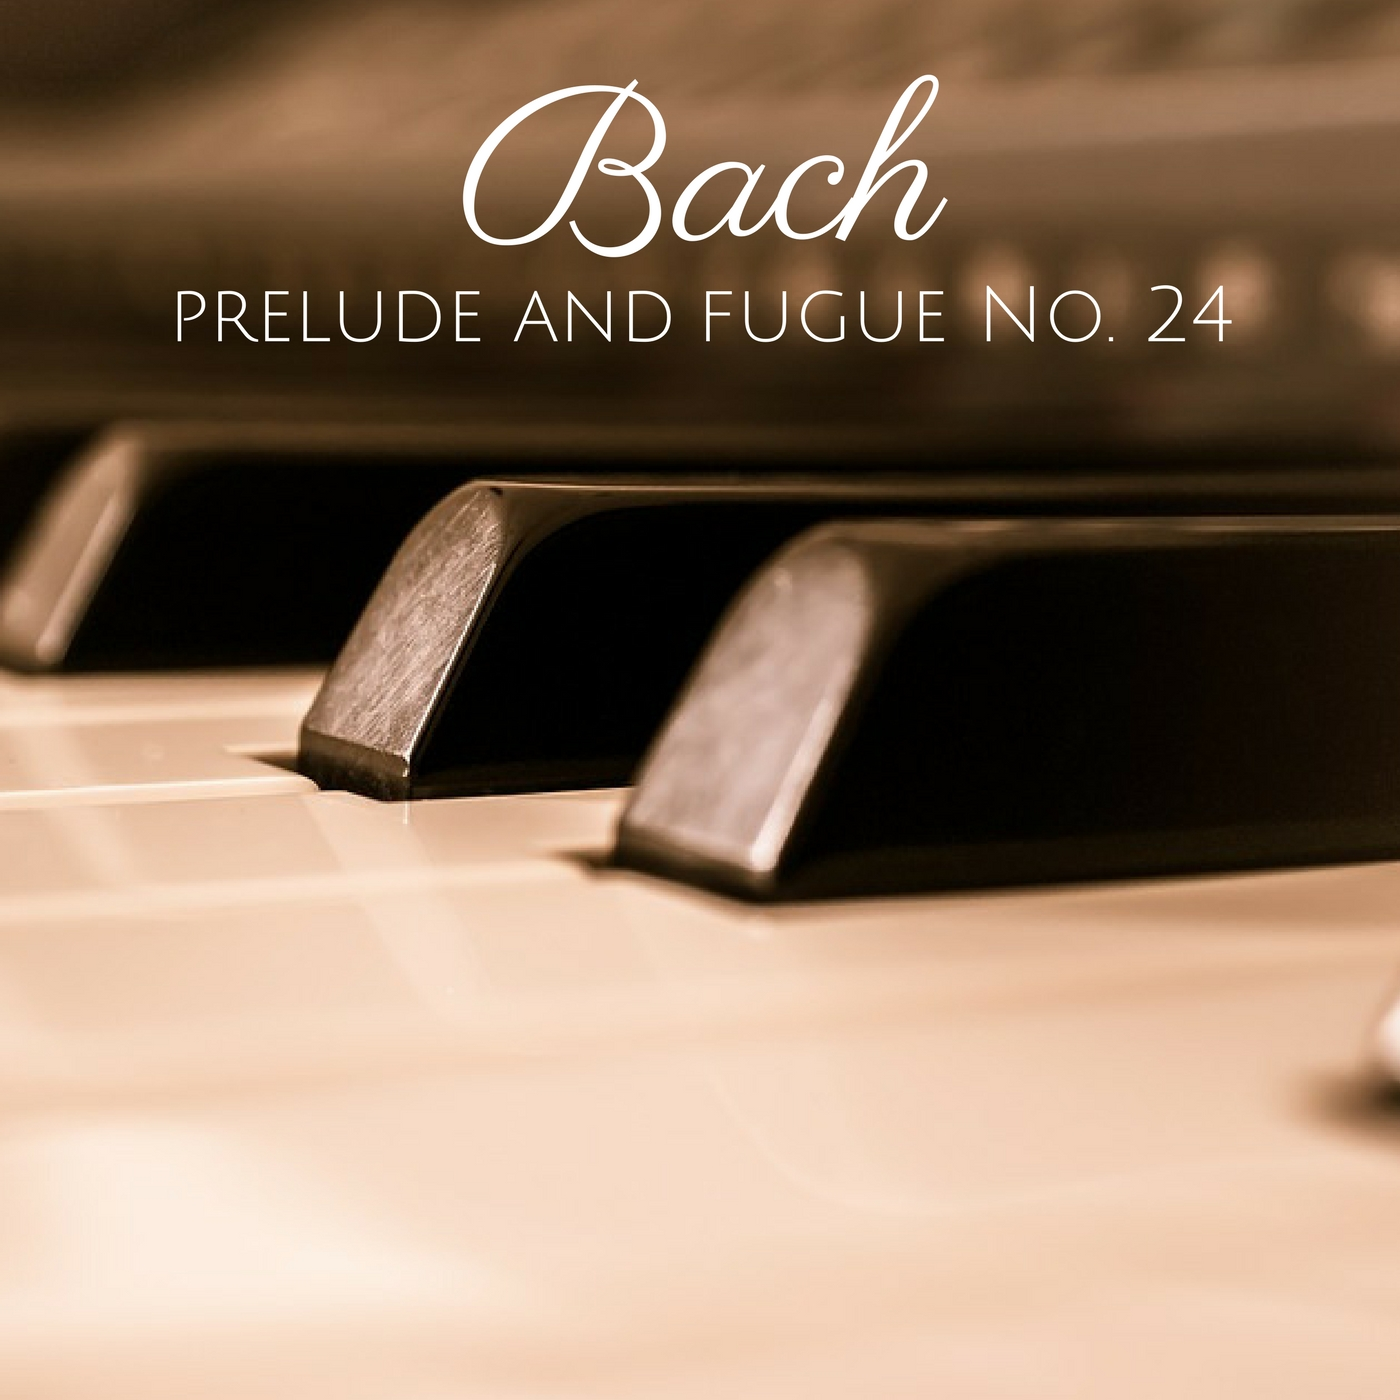 Bach - The Well-Tempered Clavier, Book II: Prelude and Fugue No. 24